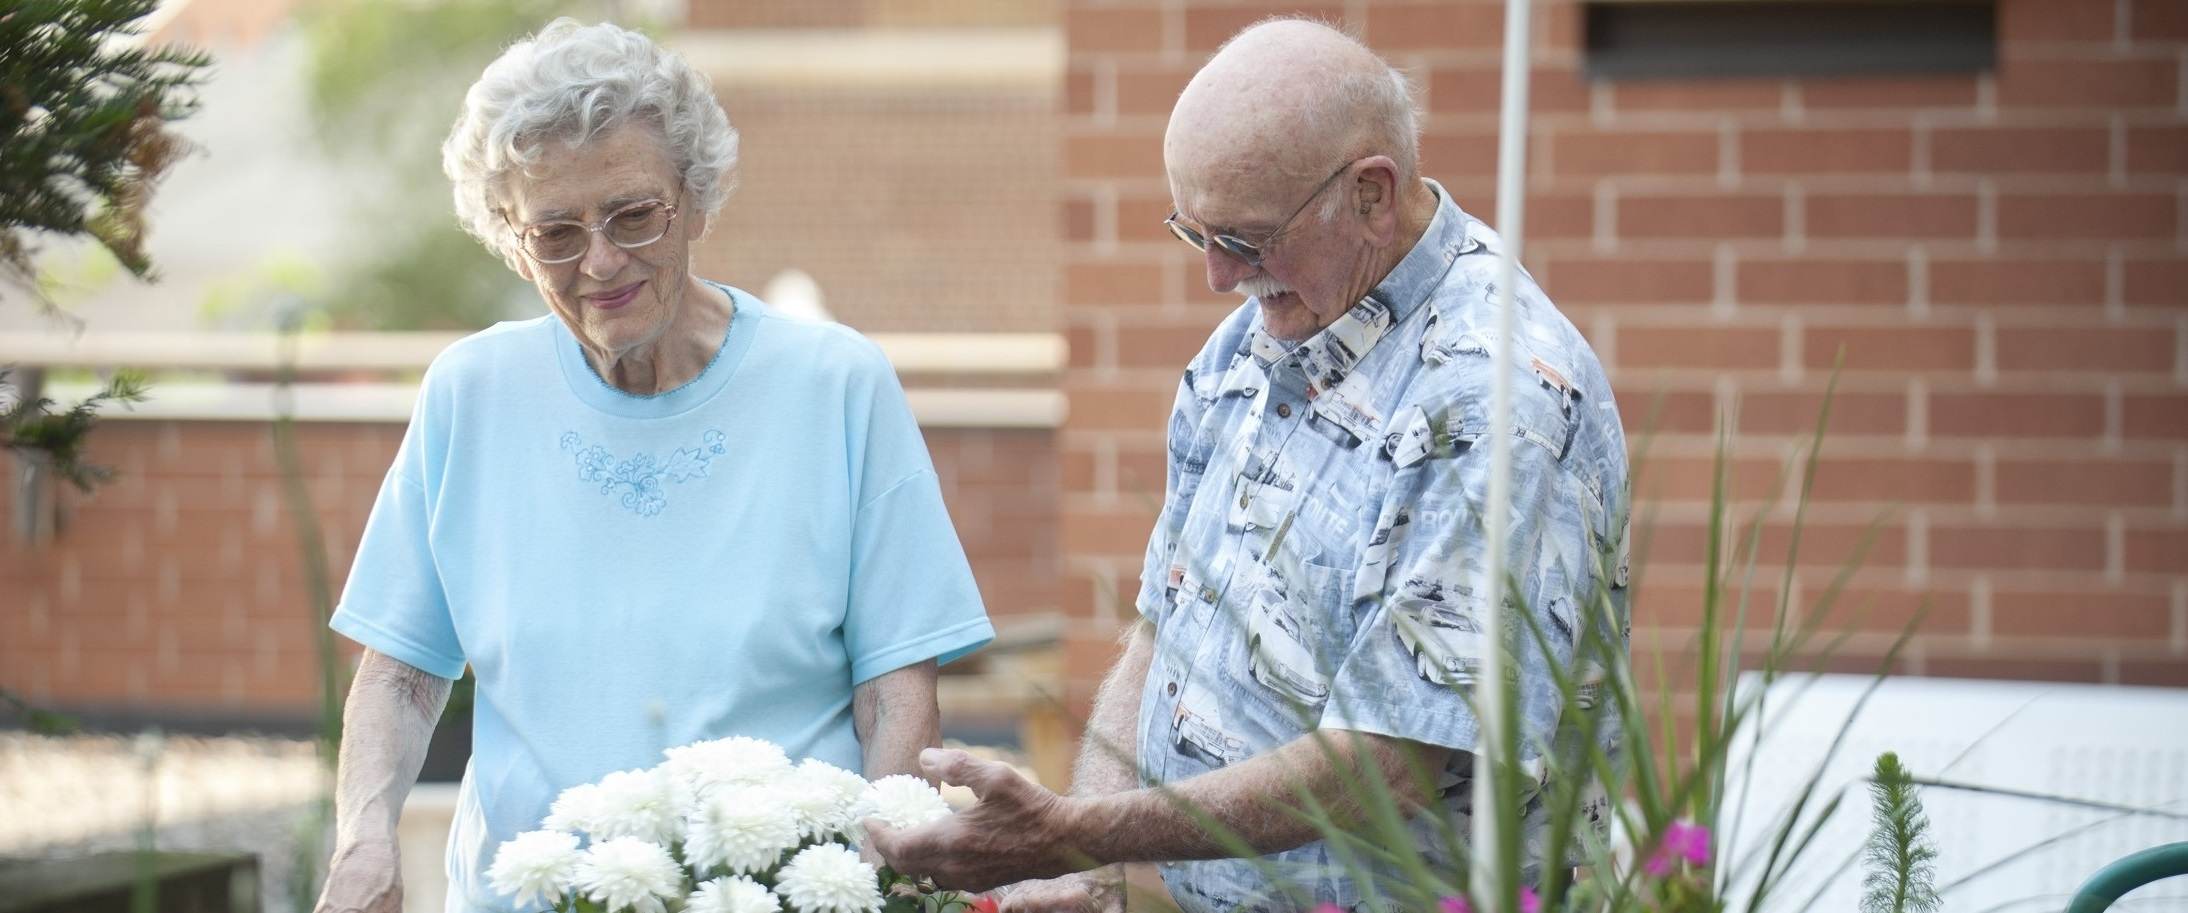 Independent and Assisted Living – Can You Have Both?